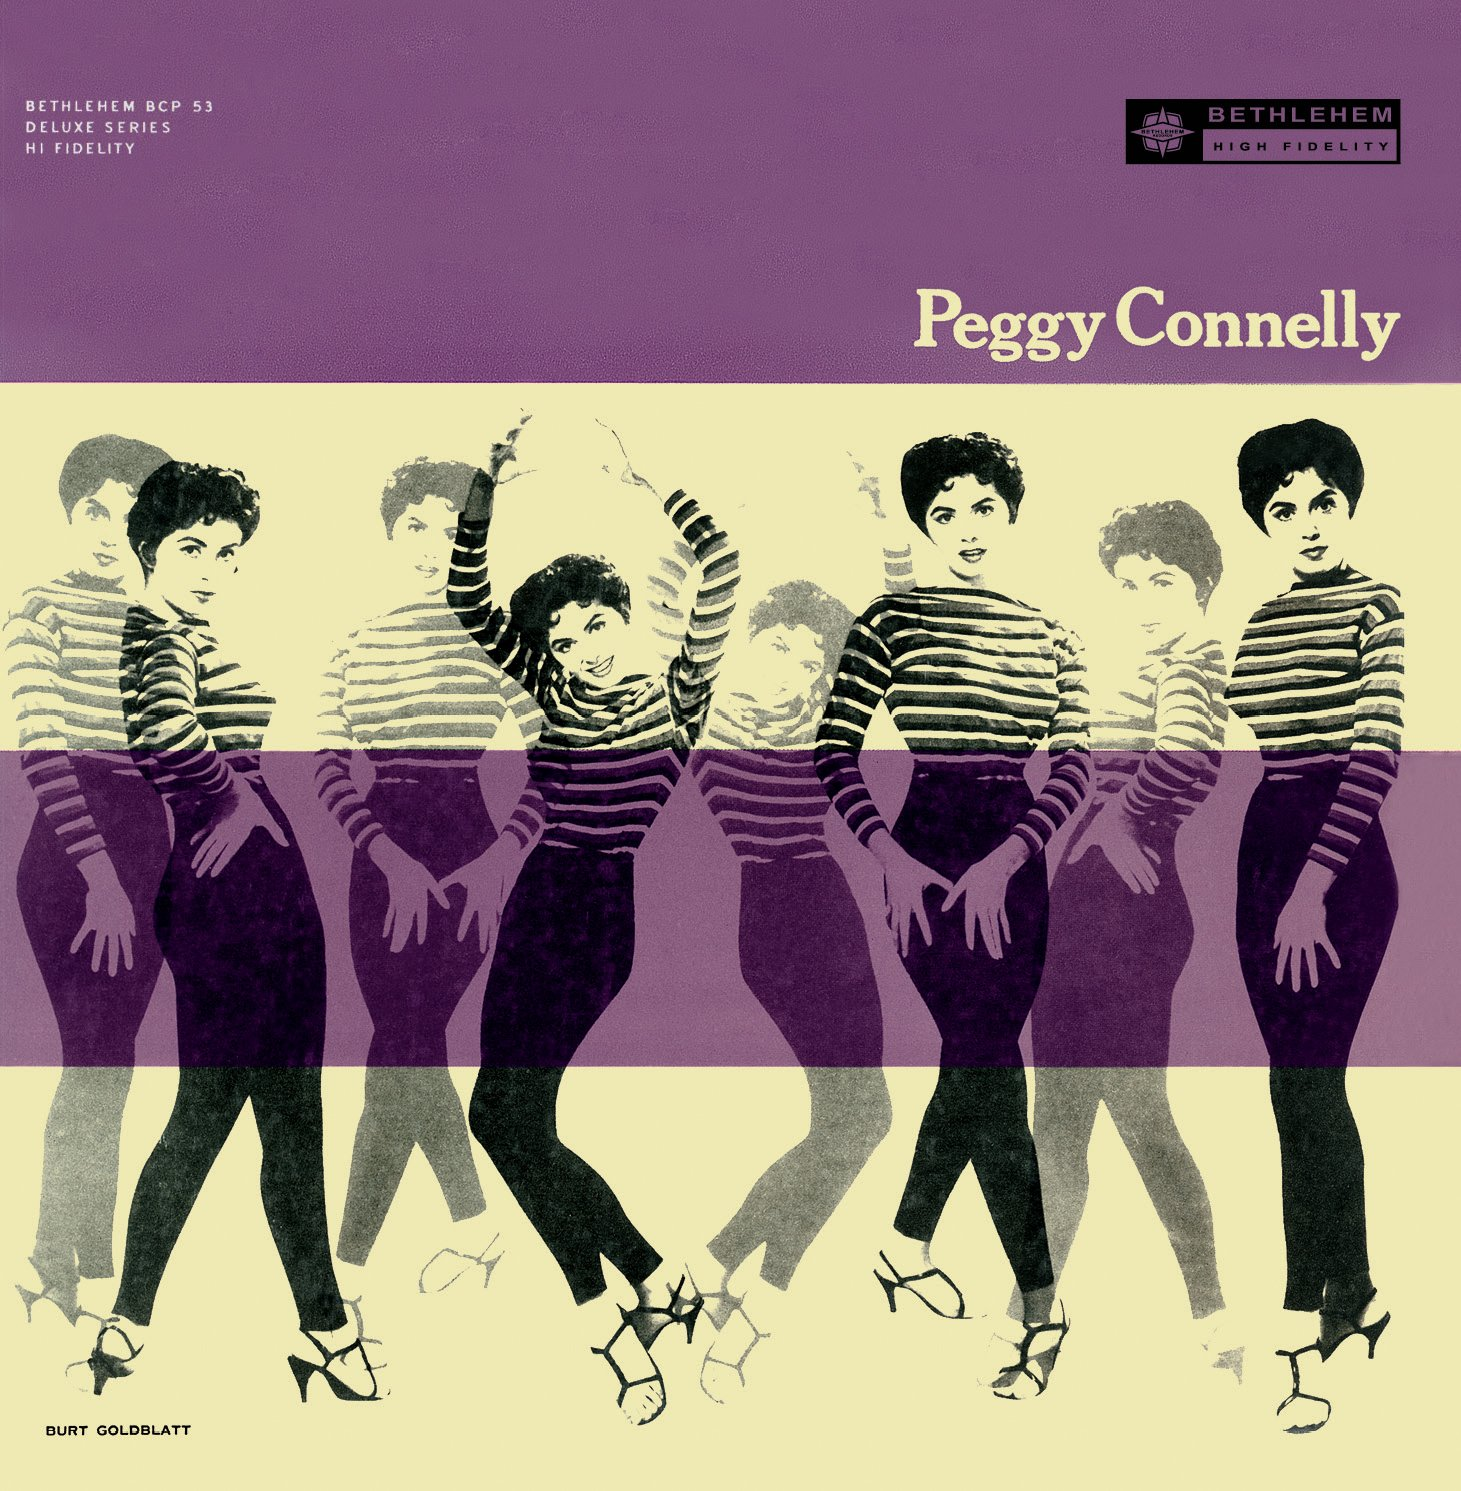 Peggy Connelly